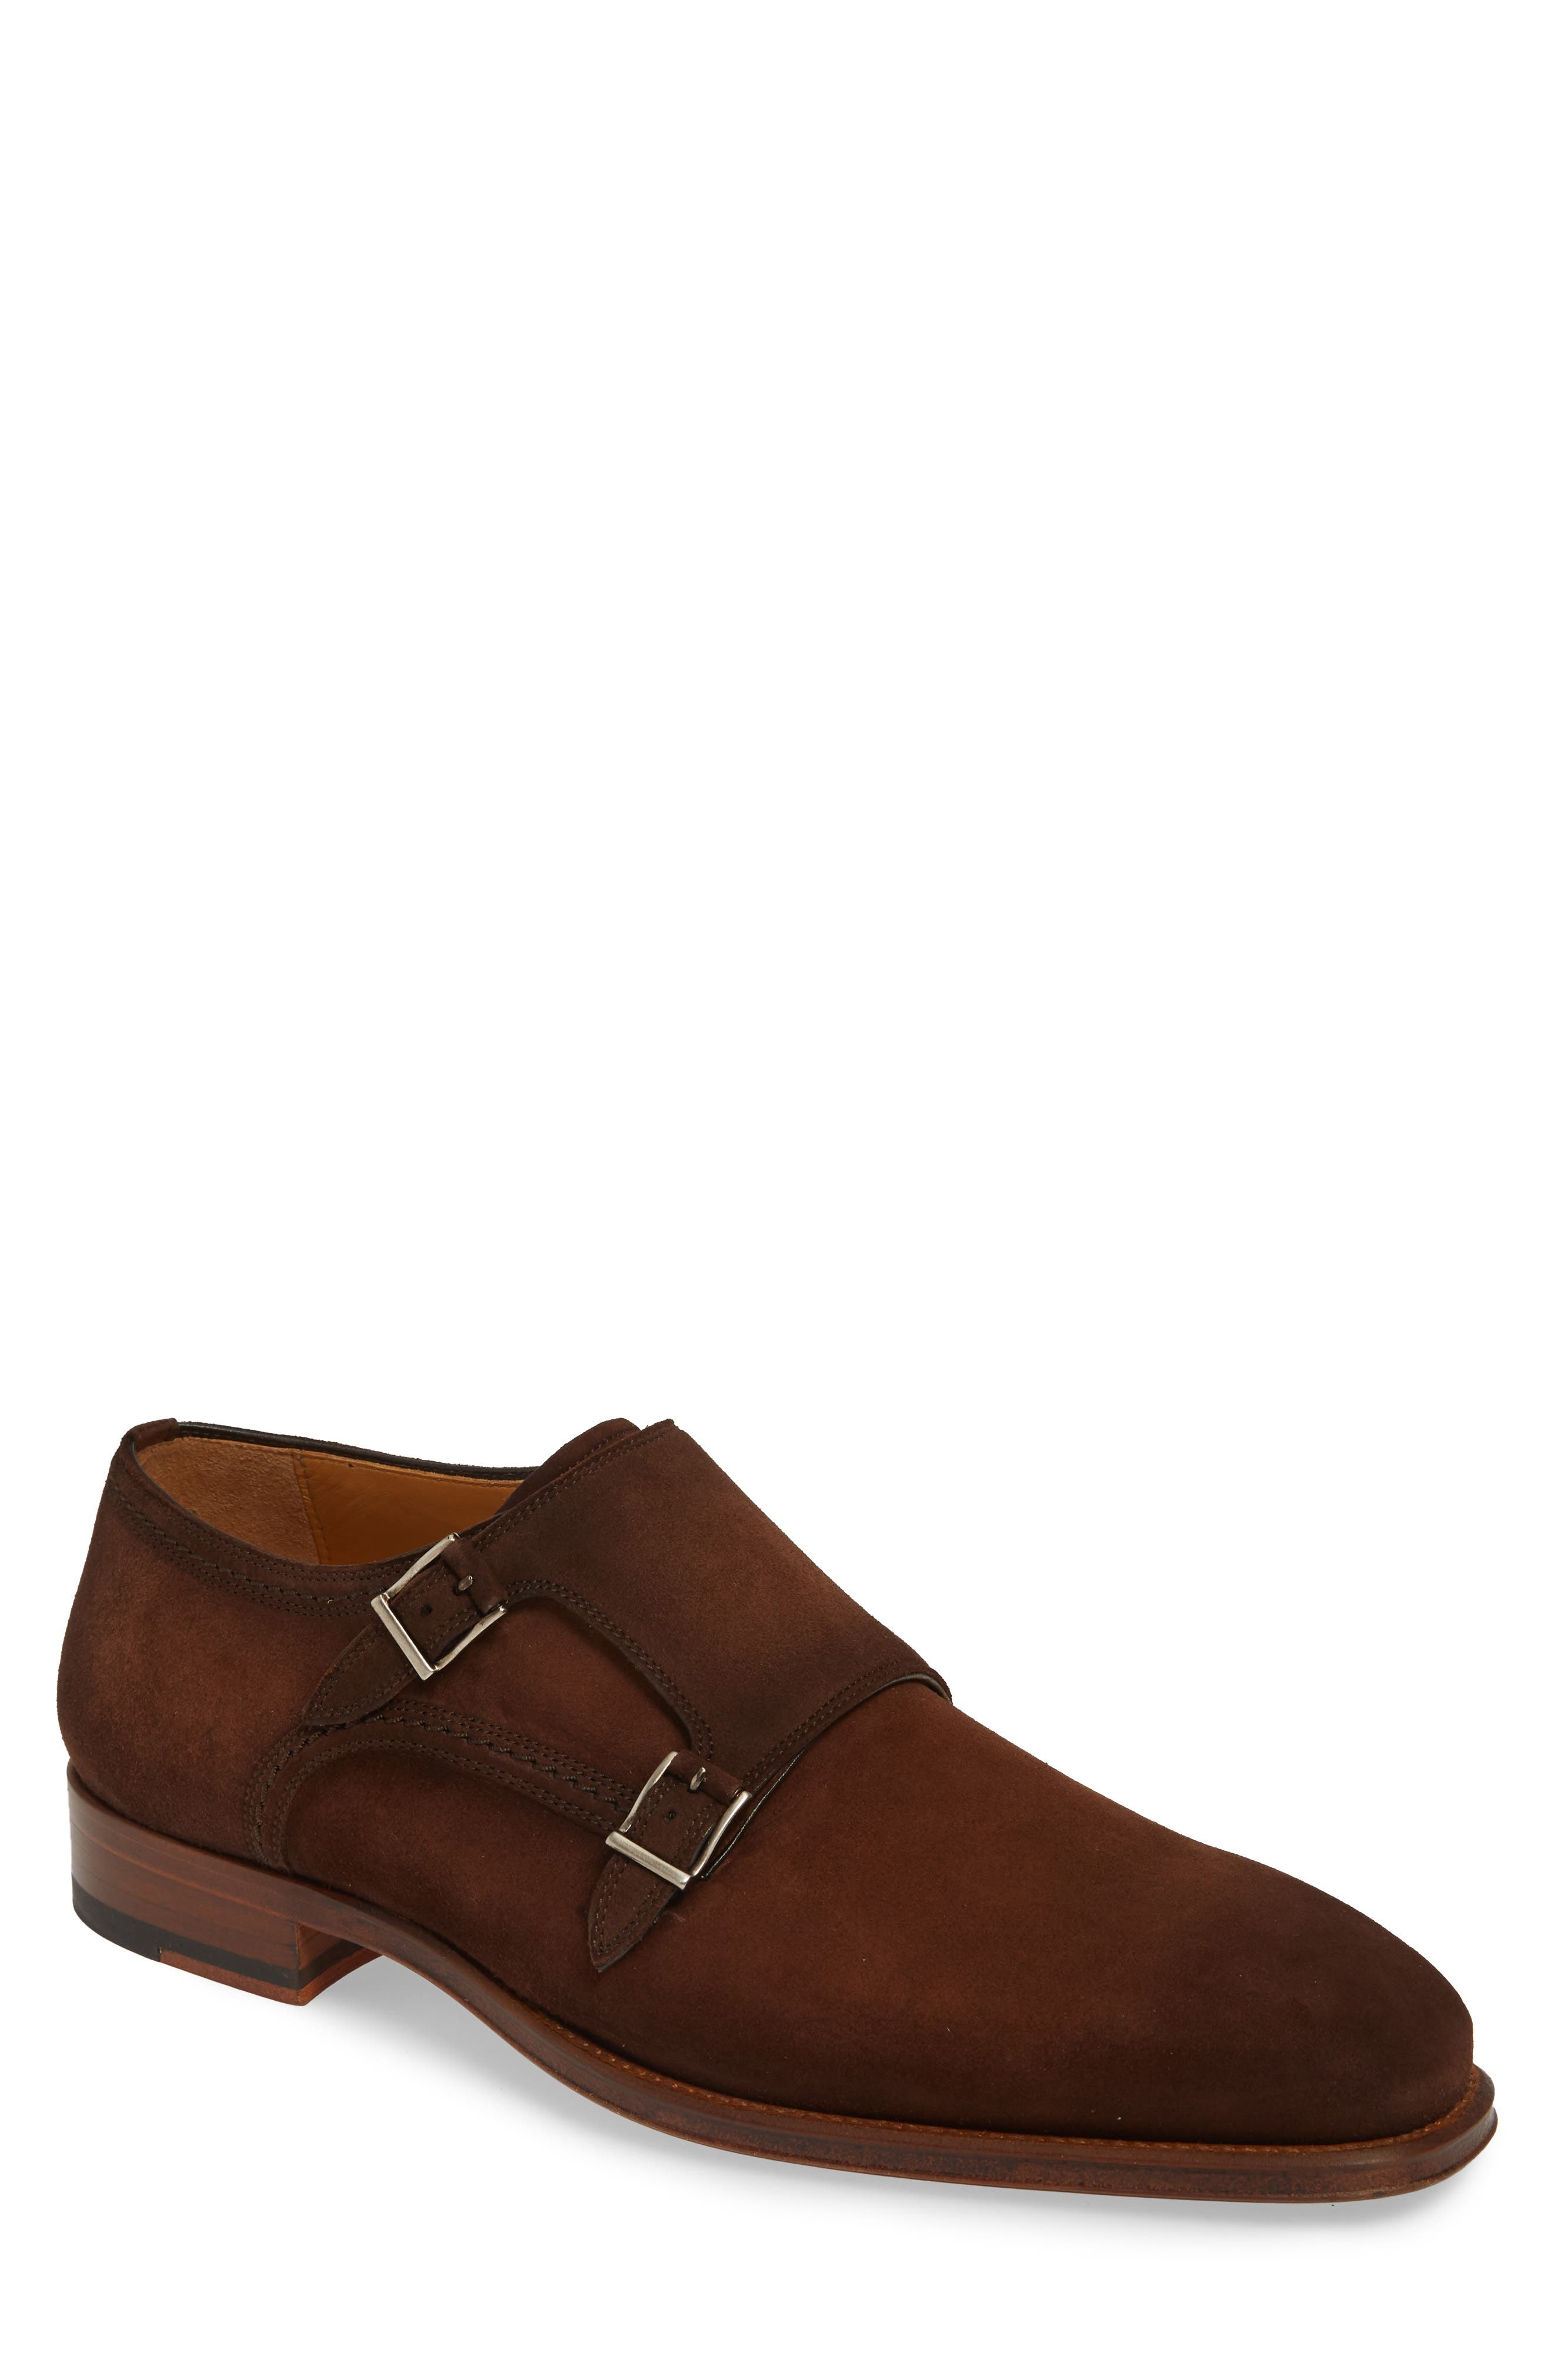 ,                             Landon Double Strap Monk Shoe,                             Main thumbnail 9, color,                             211